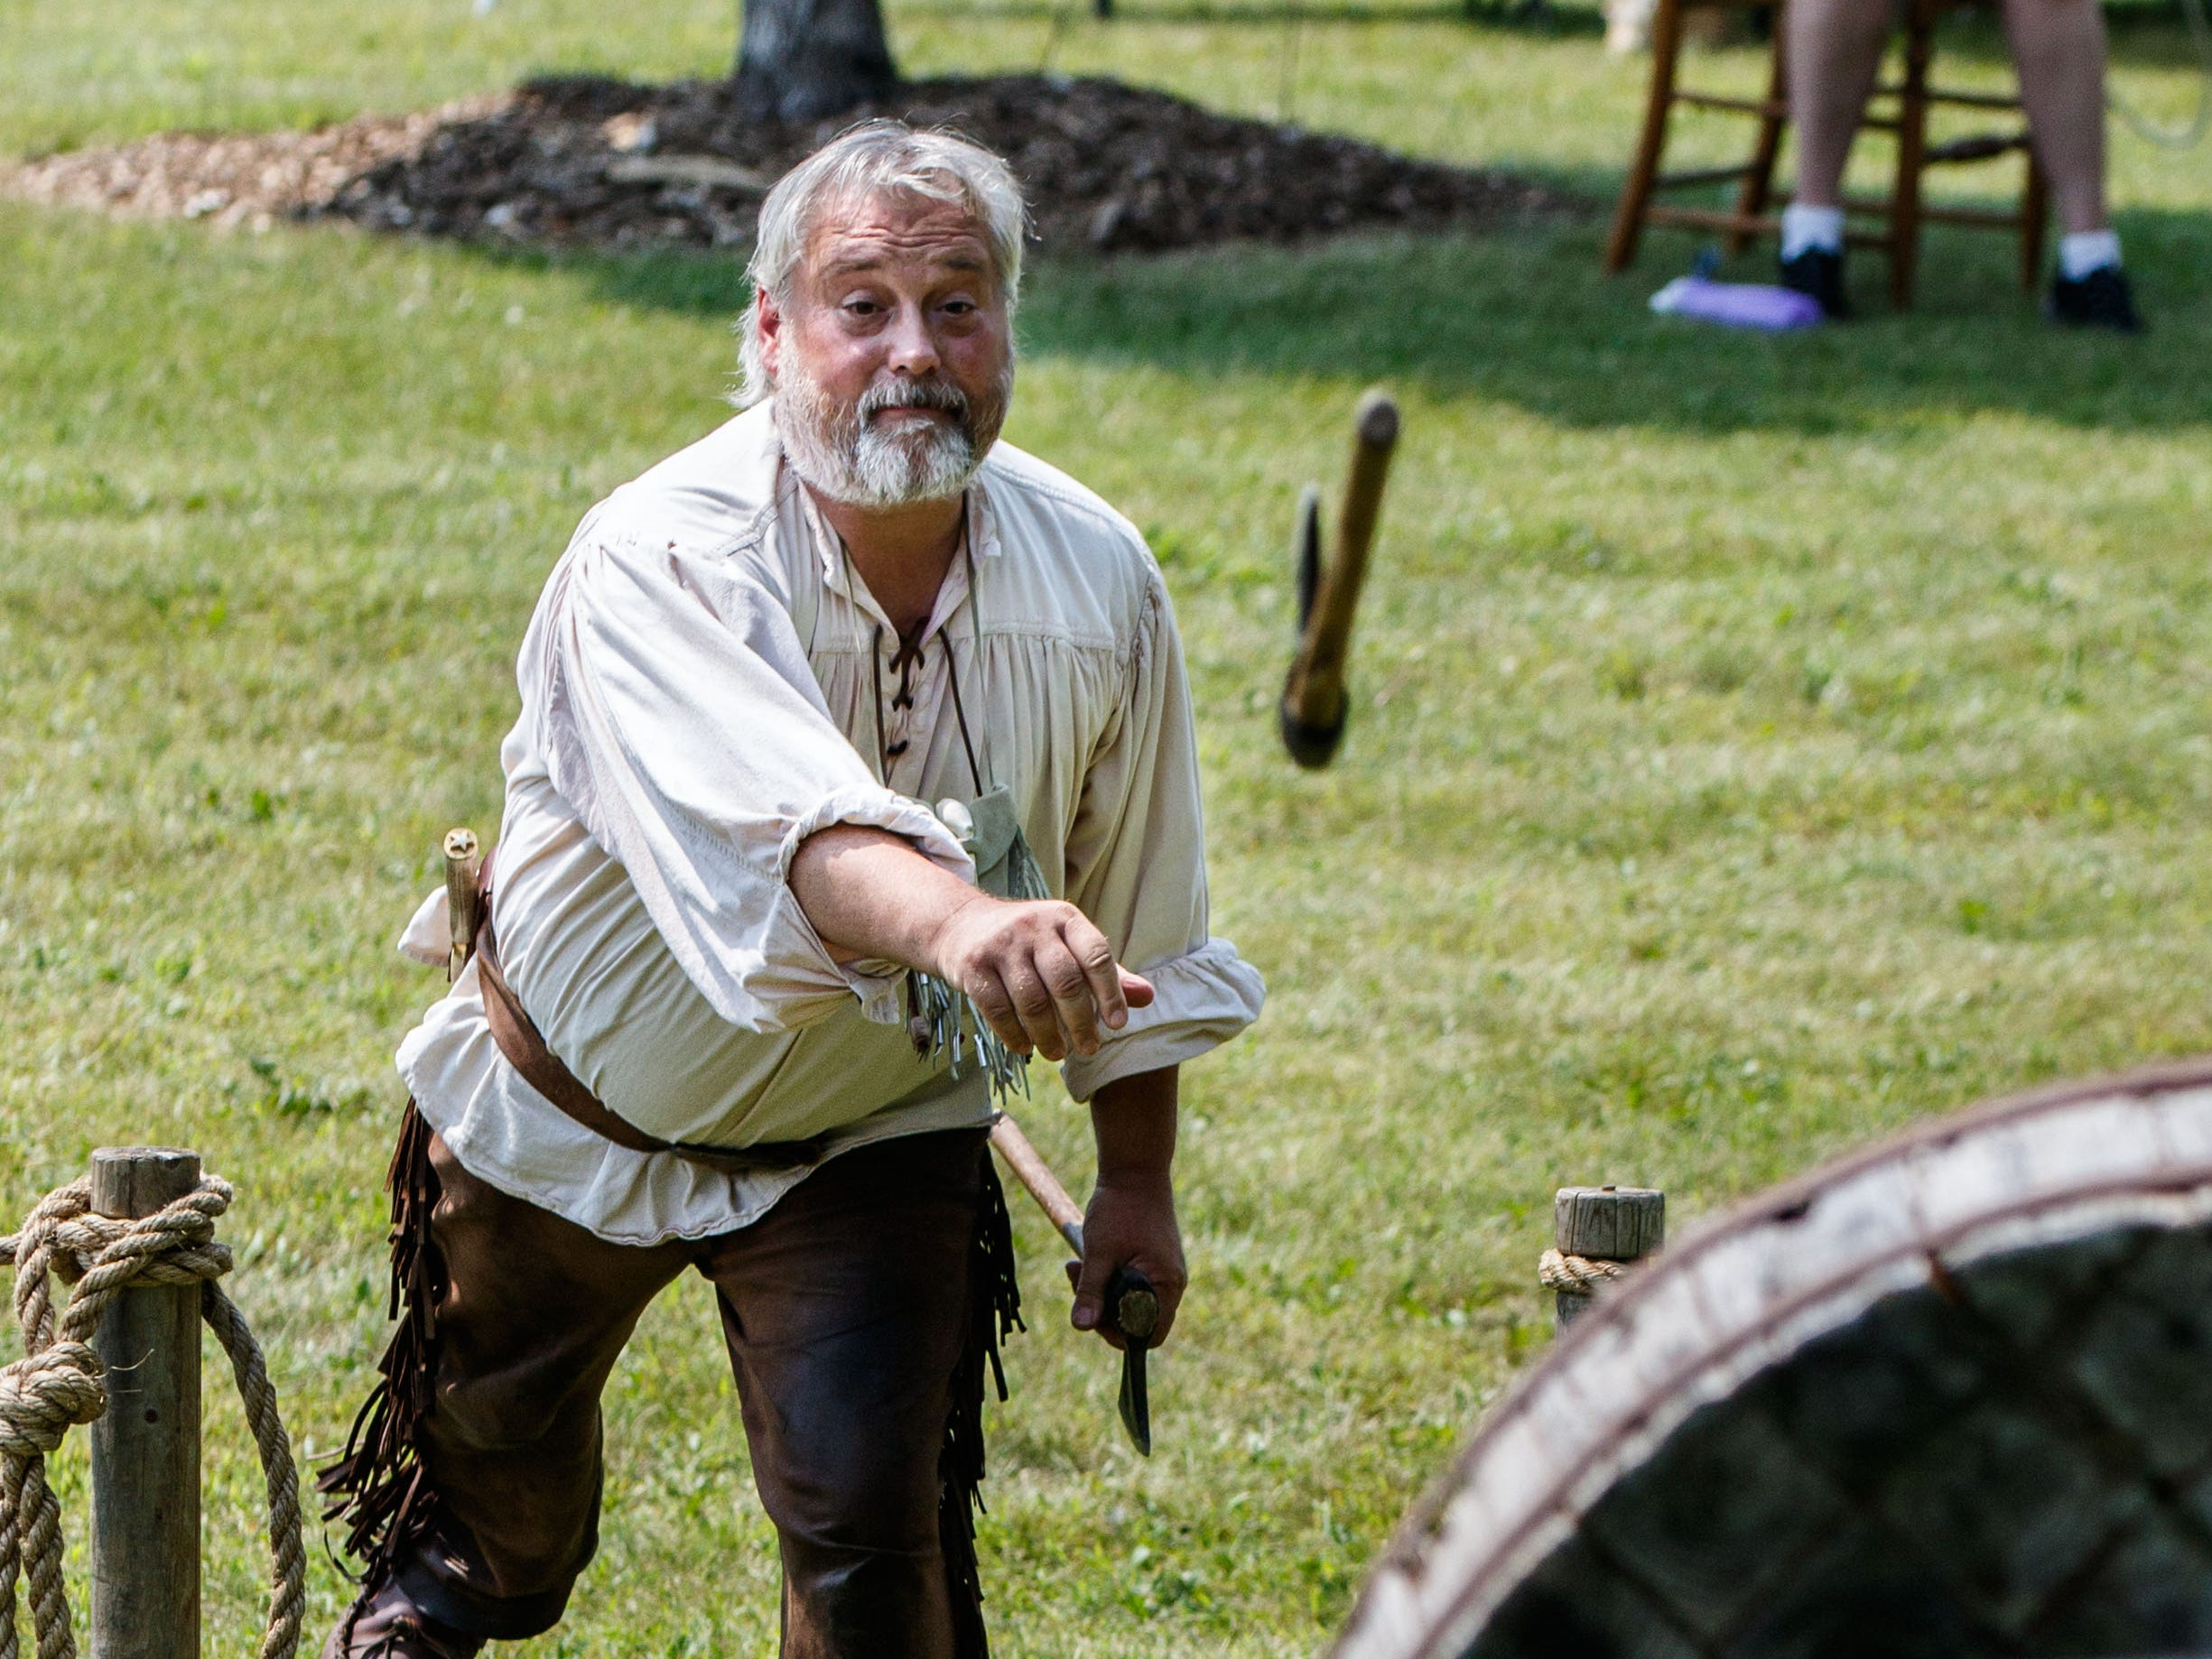 Dan Strieter of Nashotah demonstrates the art of tomahawk throwing during the Heritage Weekend living history event in Lisbon Community Park on Saturday, August 11, 2018.